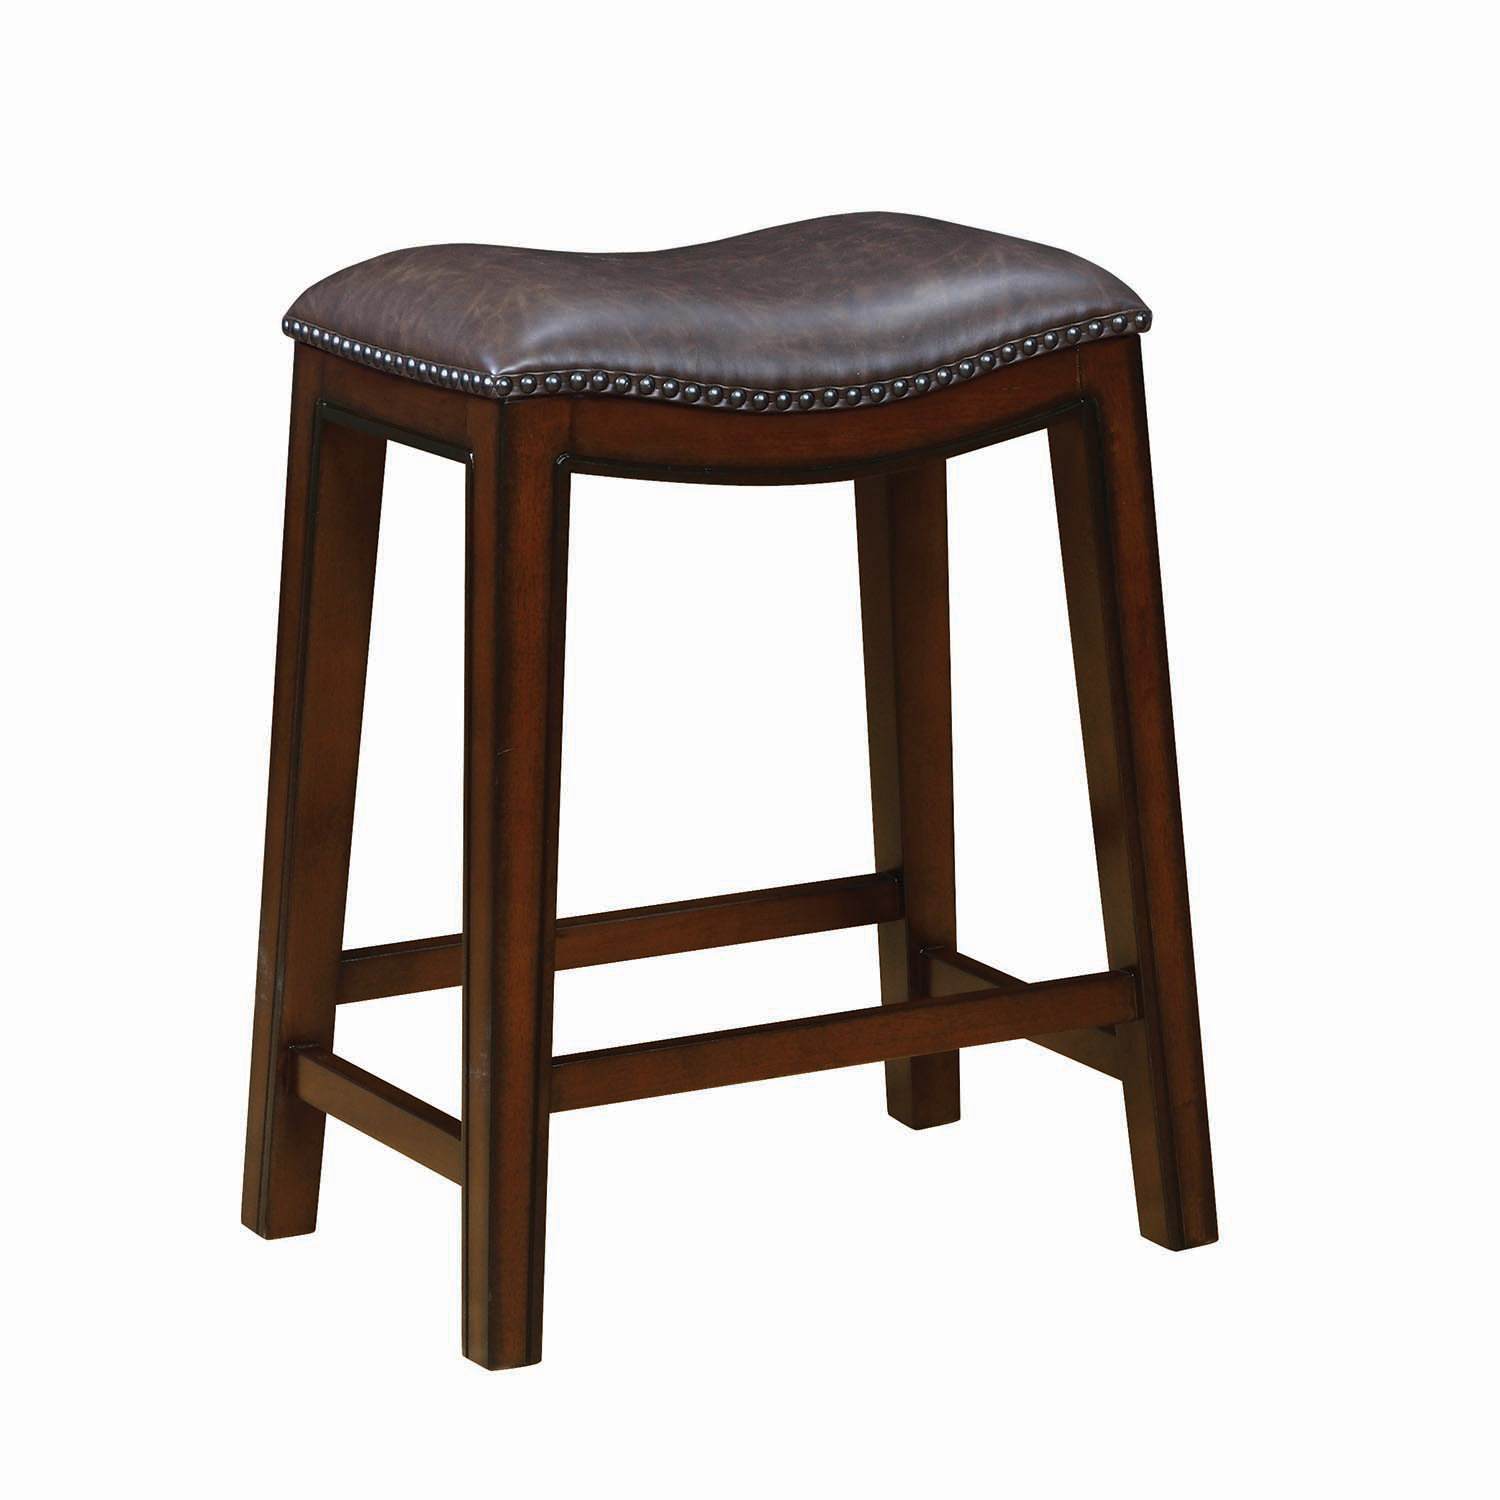 Coaster 122263 Counter Height Stool - Burnished Cappuccino